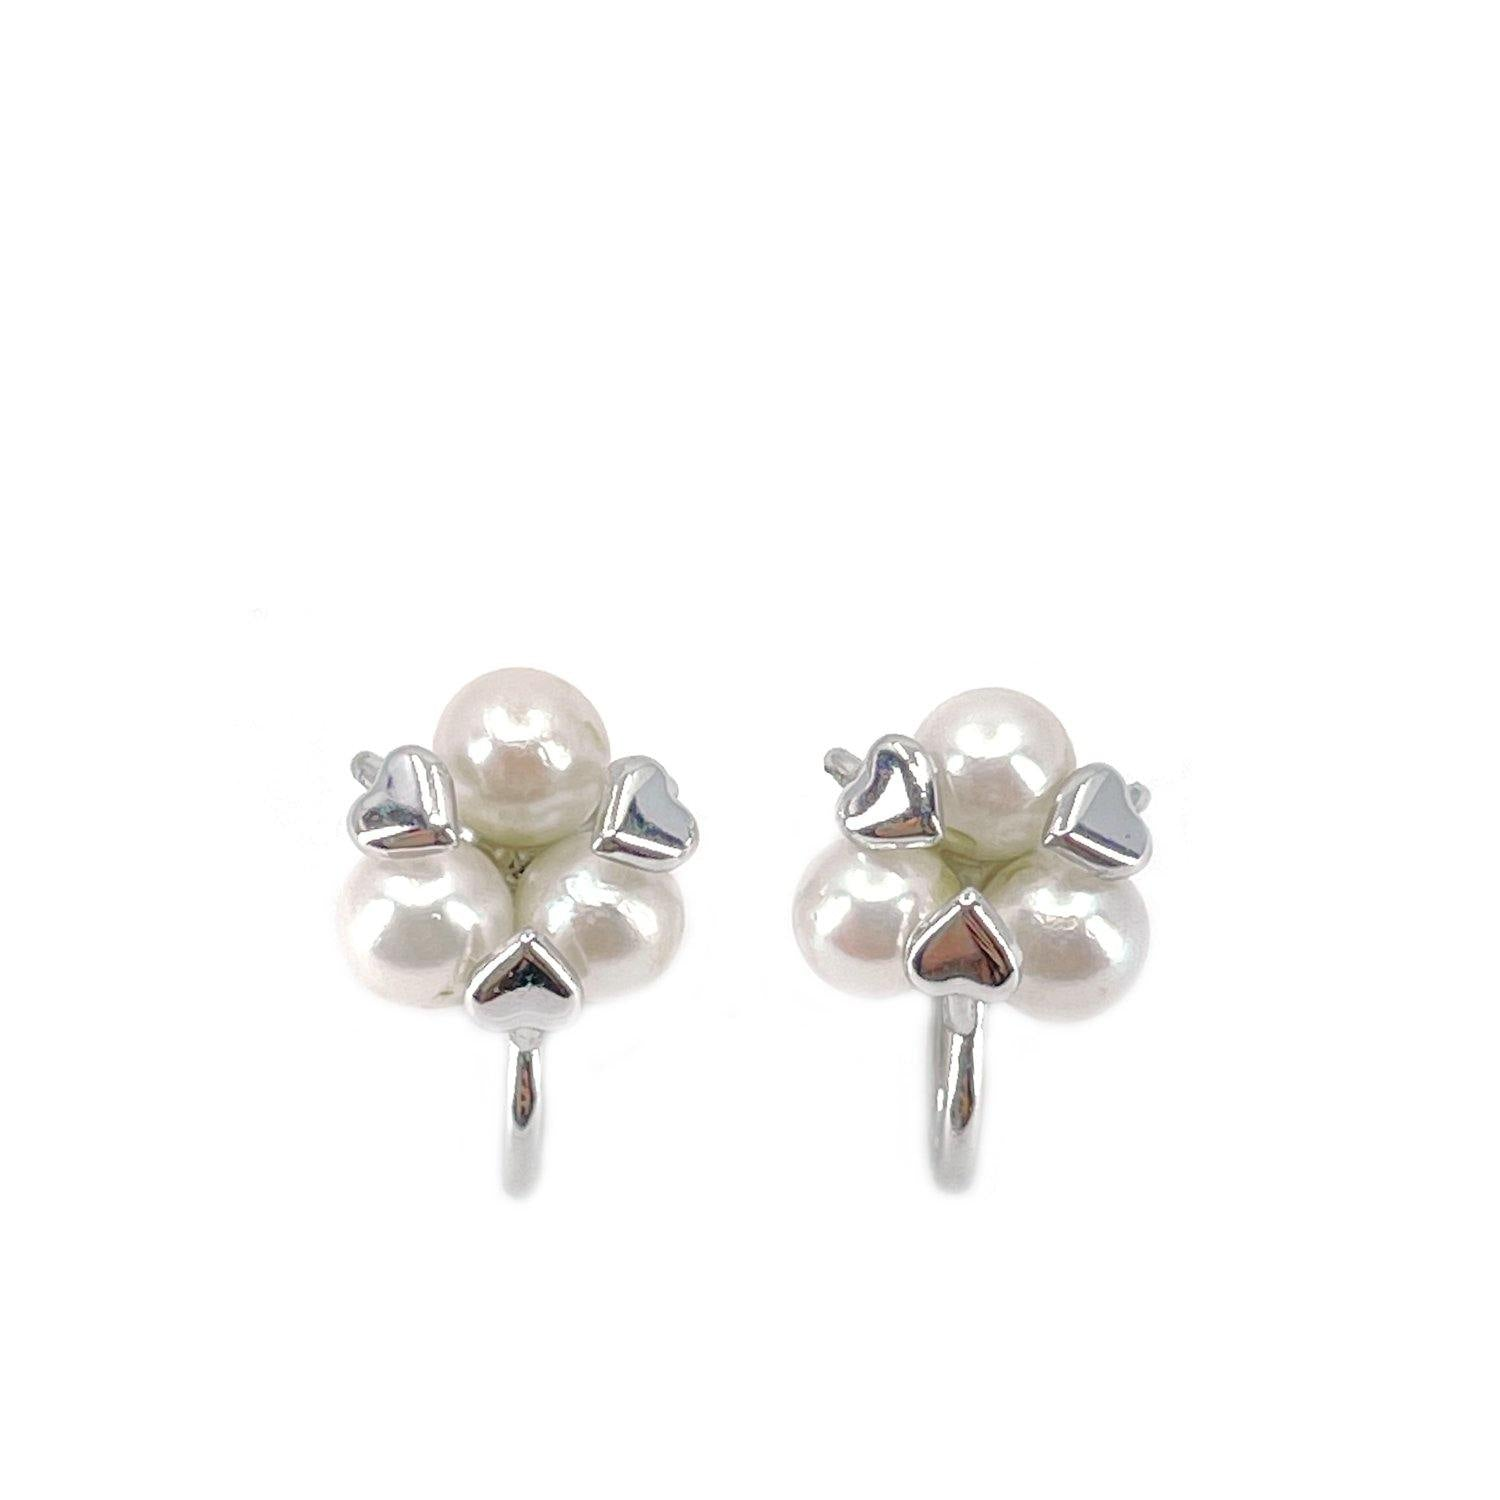 De Curtis Hearts Akoya Saltwater Cultured Pearl Screwback Earrings- Sterling Silver